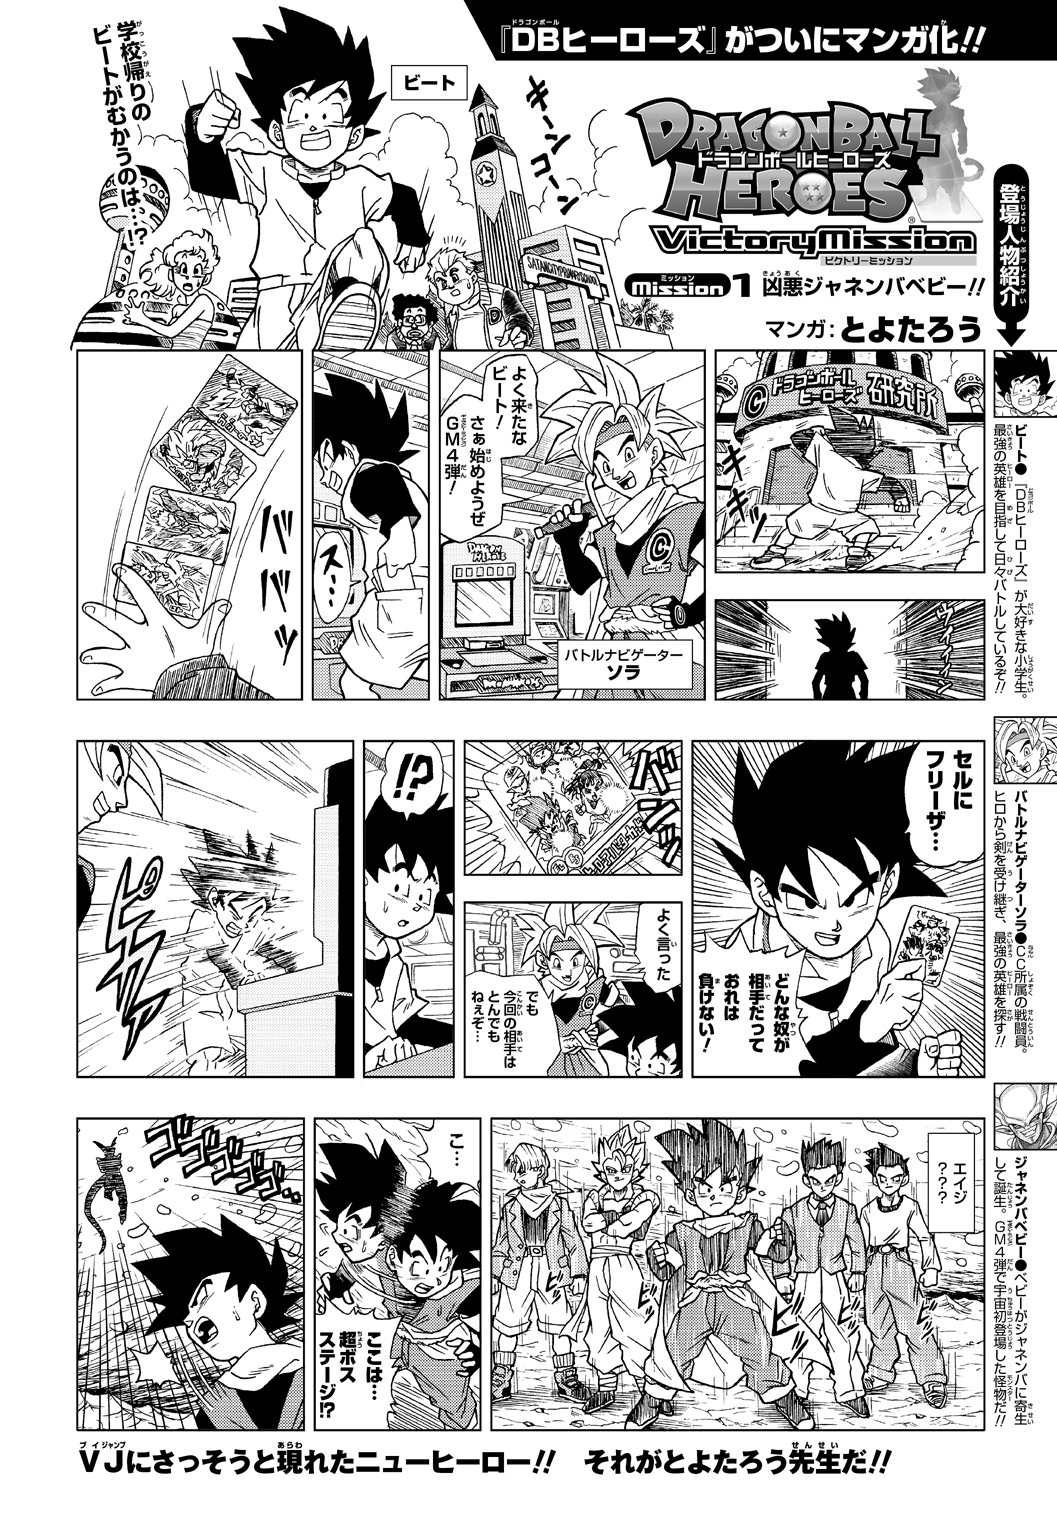 Dragon Ball Heroes Victory Mission Chapitre 001